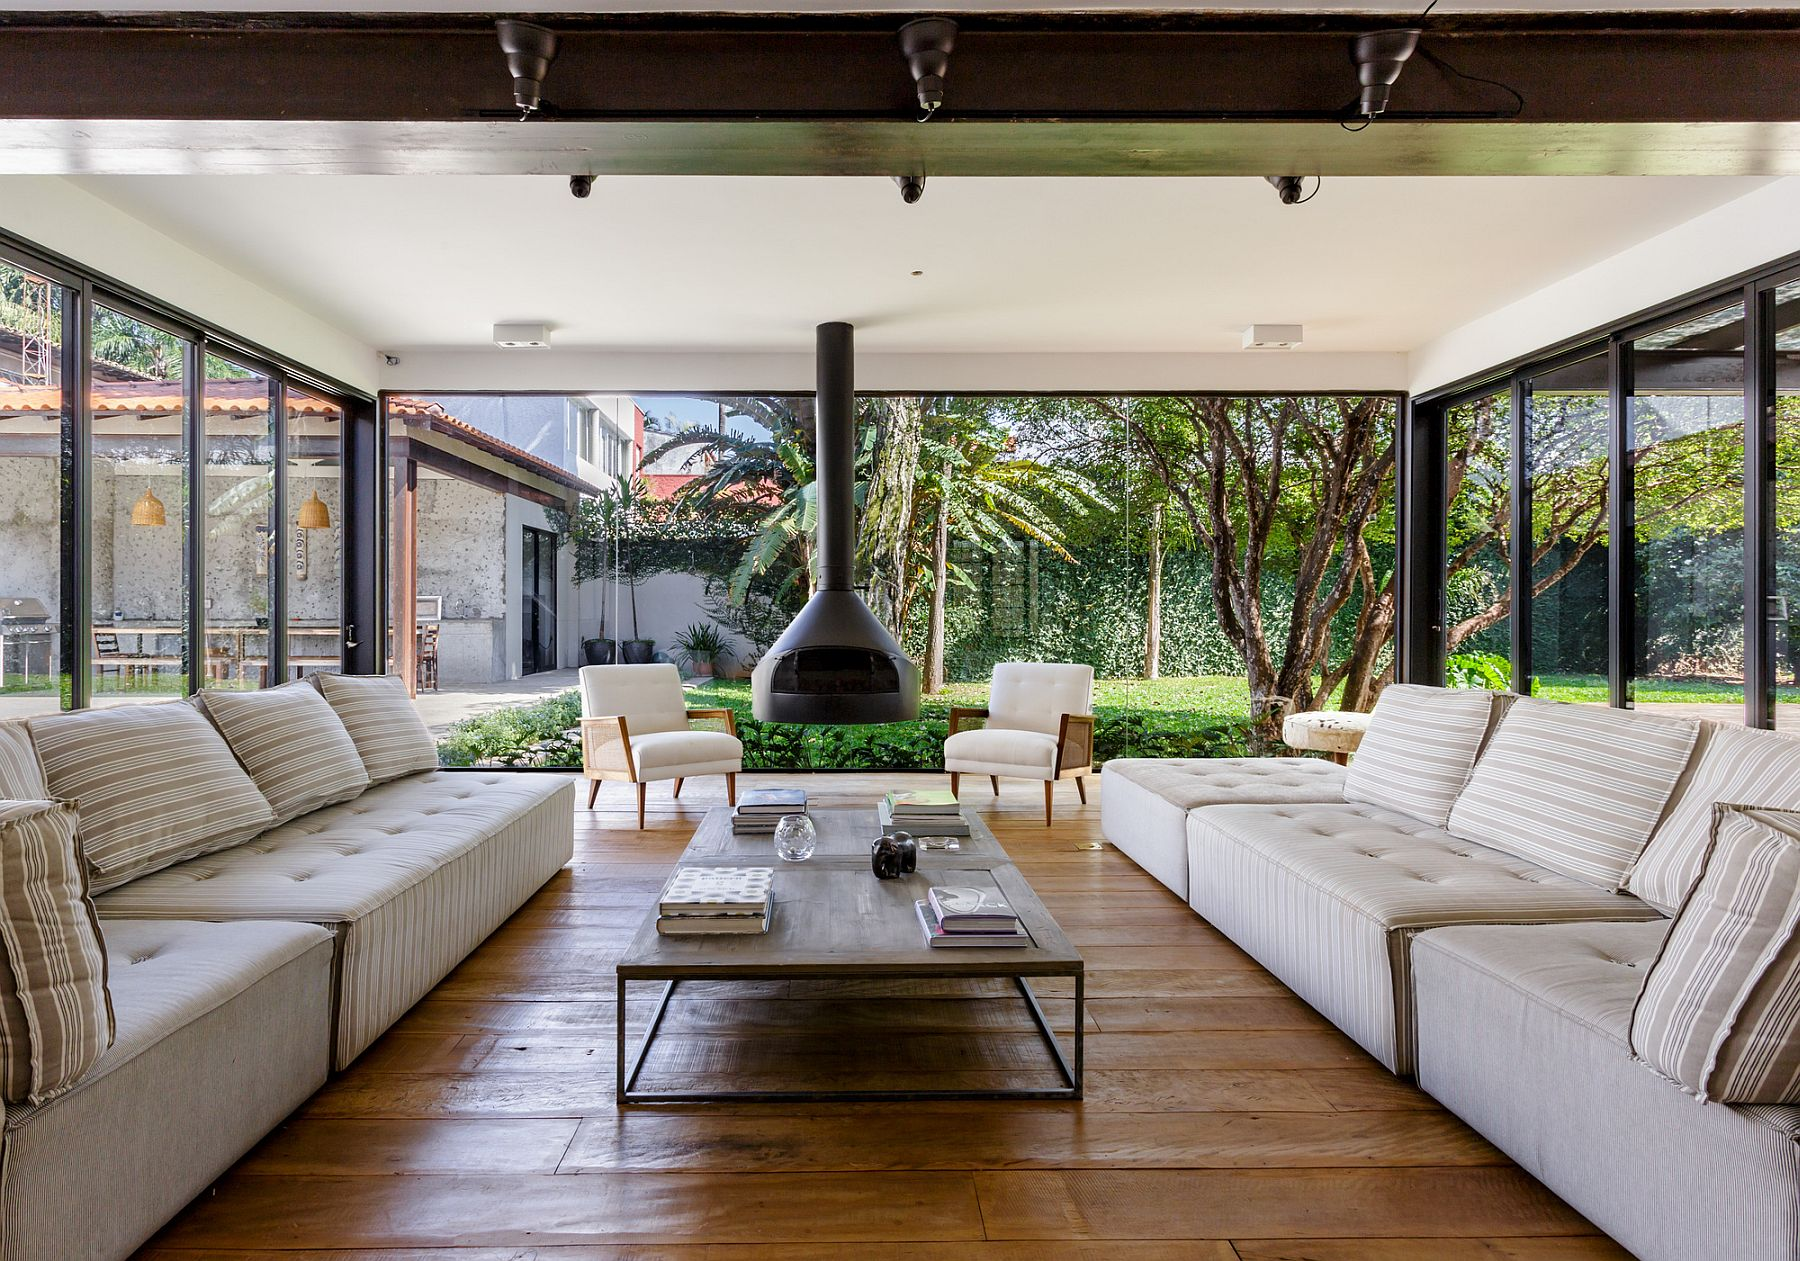 Living room with glass walls and fireplace connecetd with the garden and the pool outside